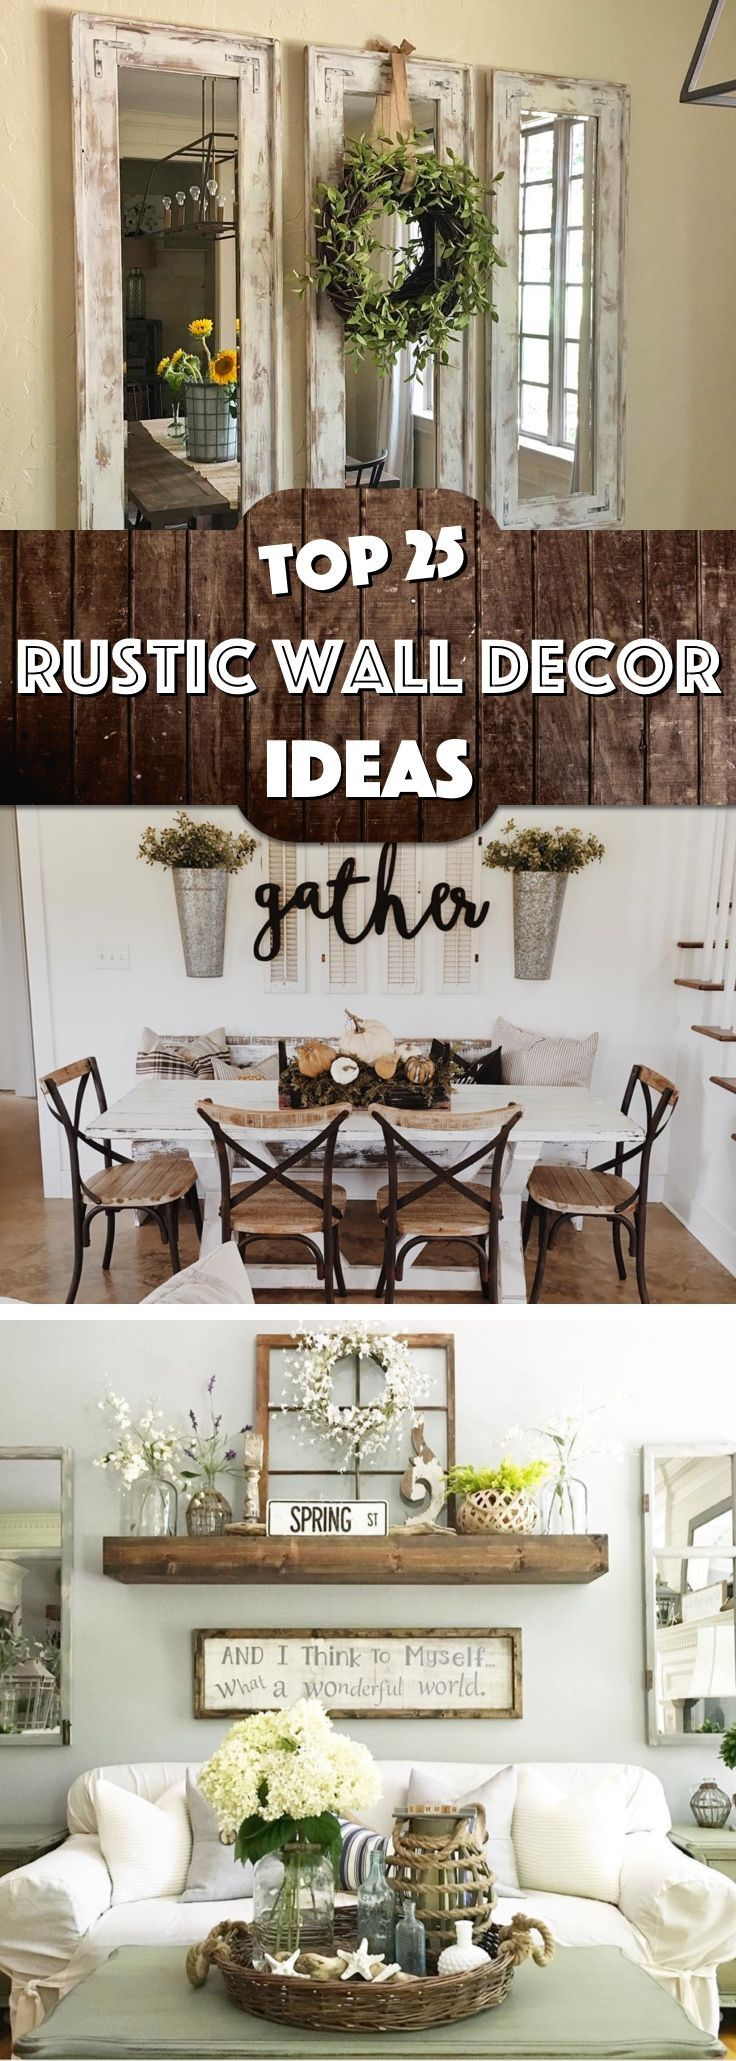 Best 25+ Living Room Wall Ideas Ideas On Pinterest | Living Room Wall Decor,  Picture Wall Living Room And Wall Of Frames